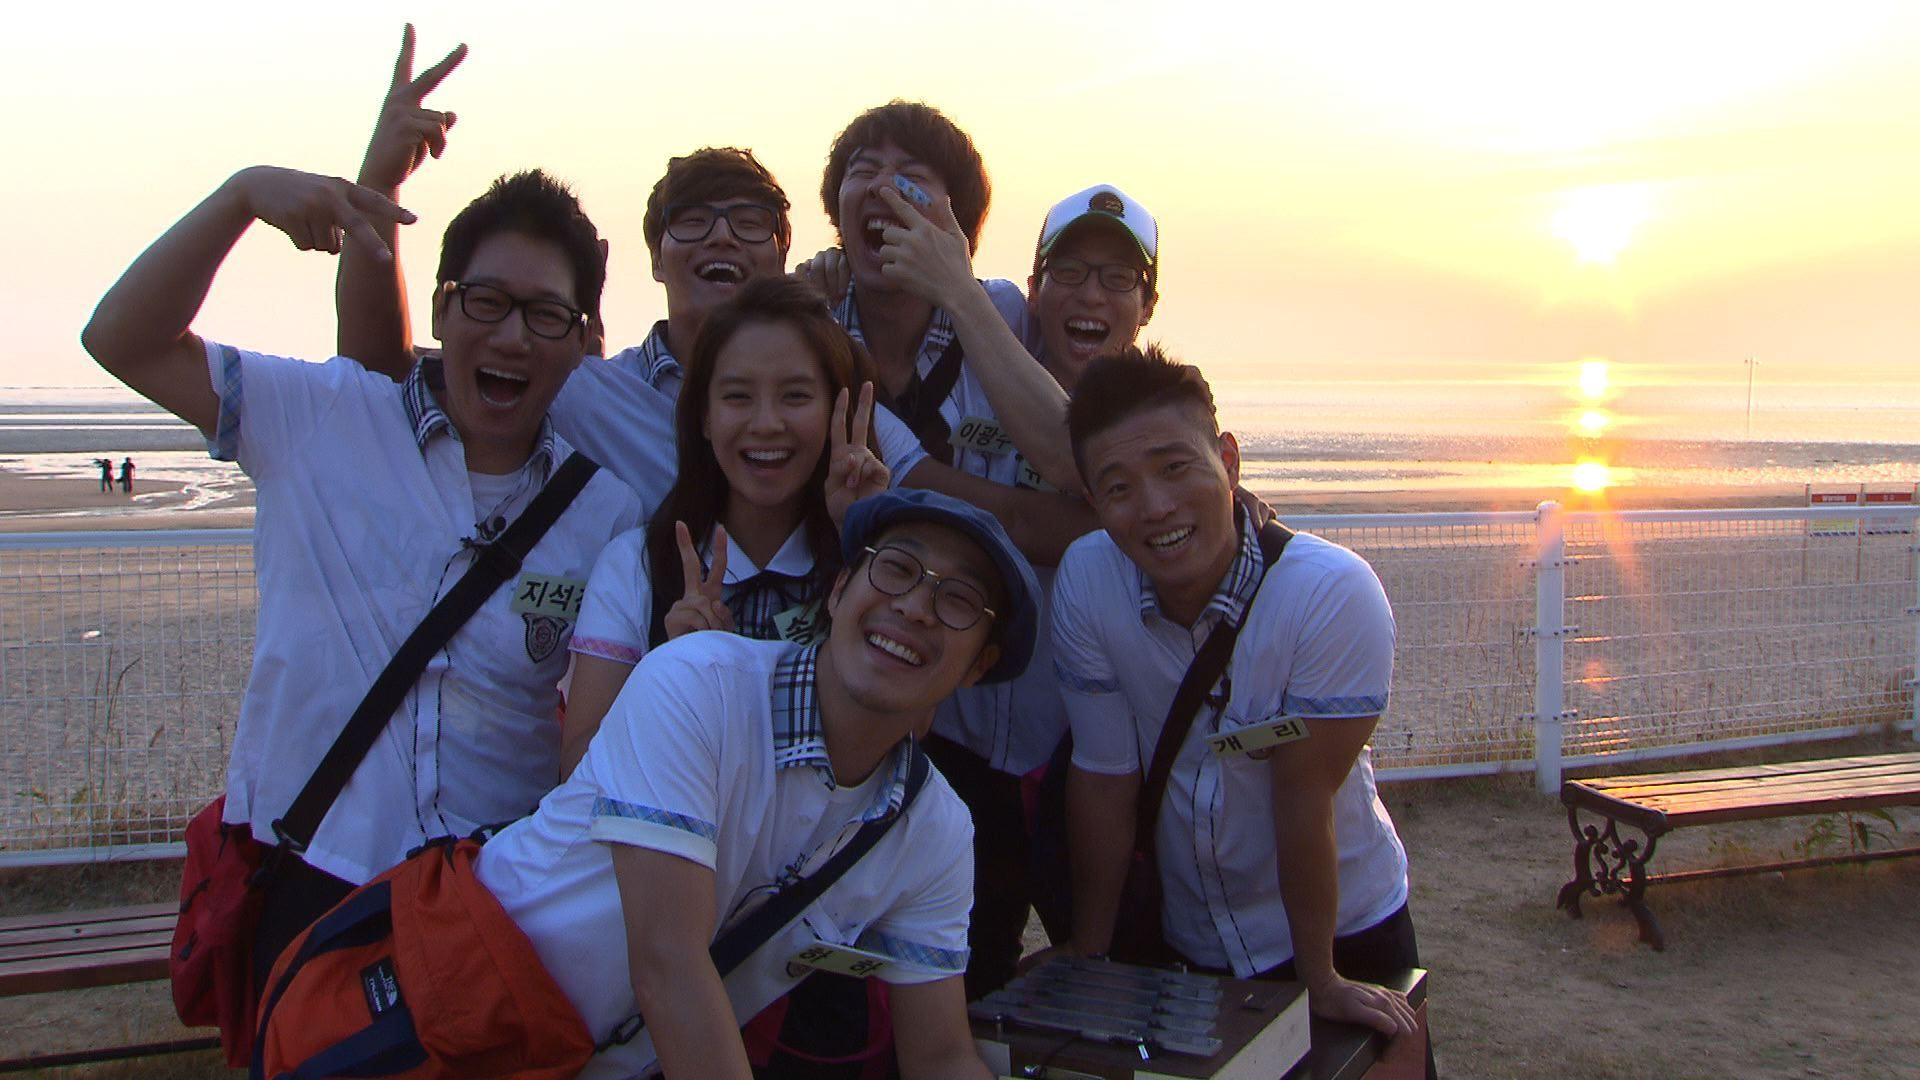 jung jong hwa on running man | list running man's guests and themes